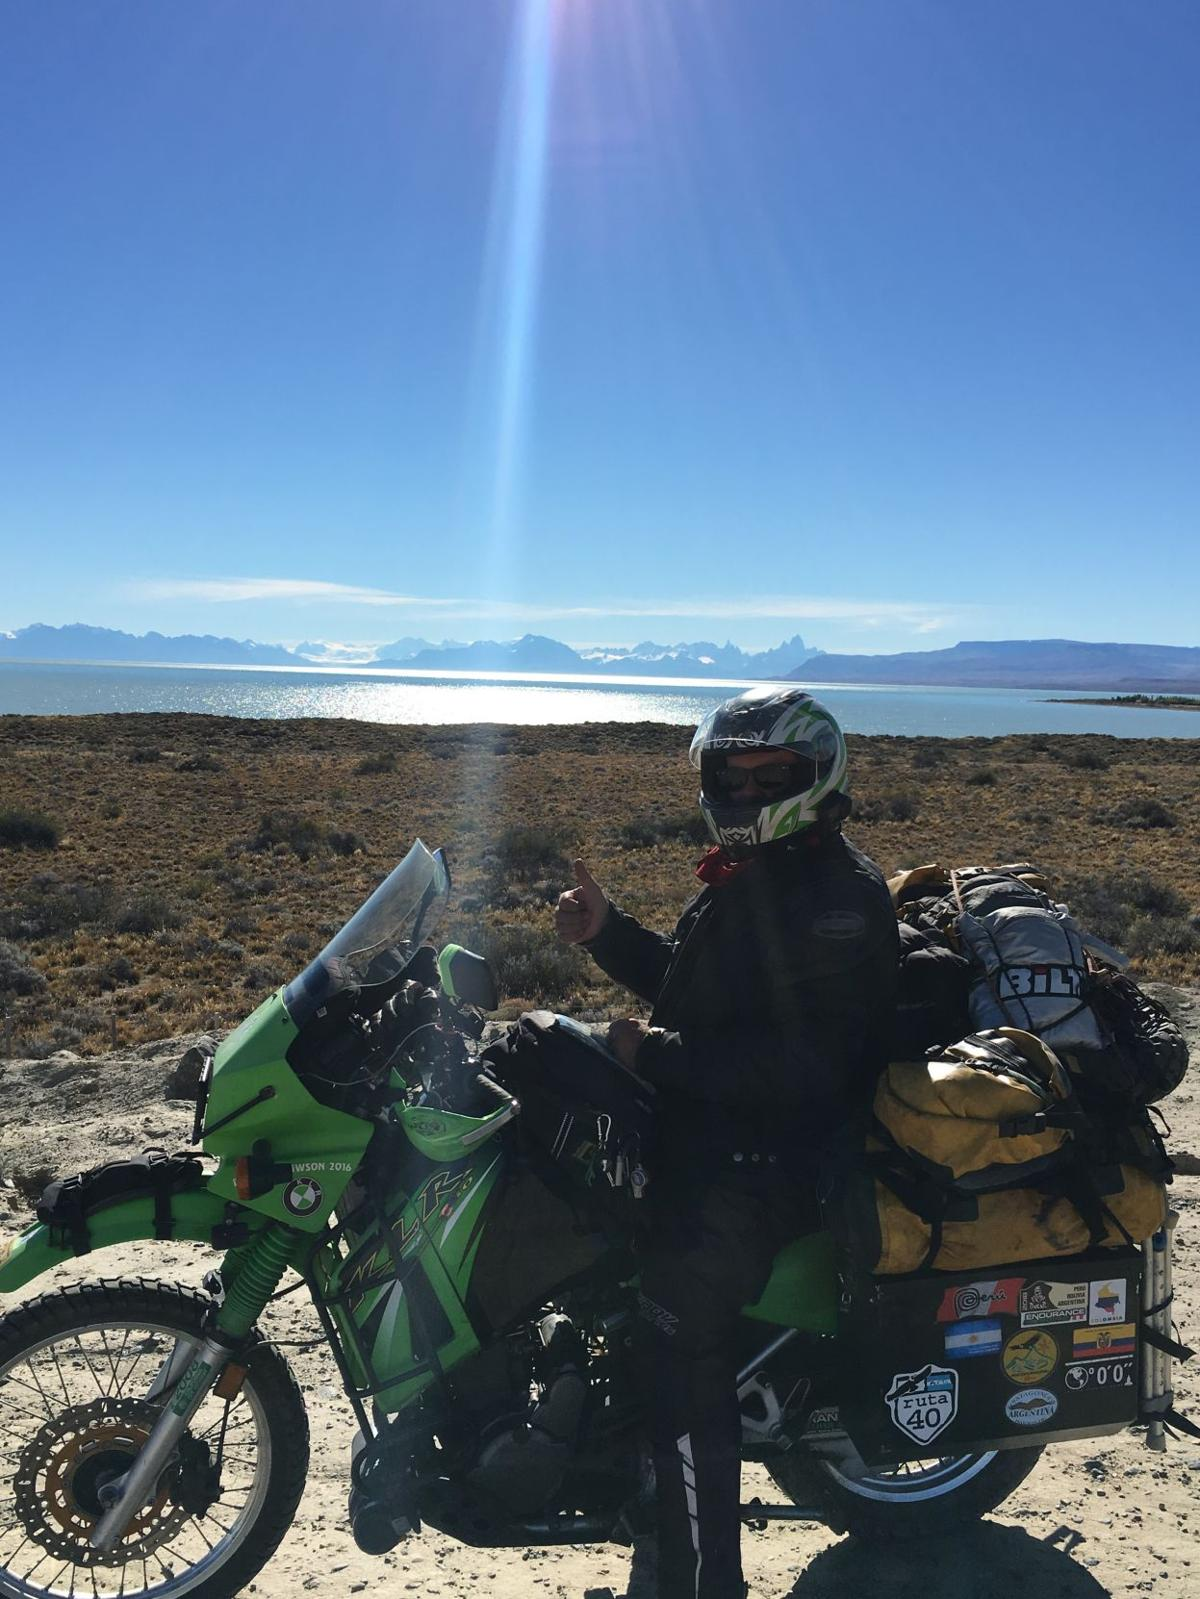 Pan-American motorcycle ride